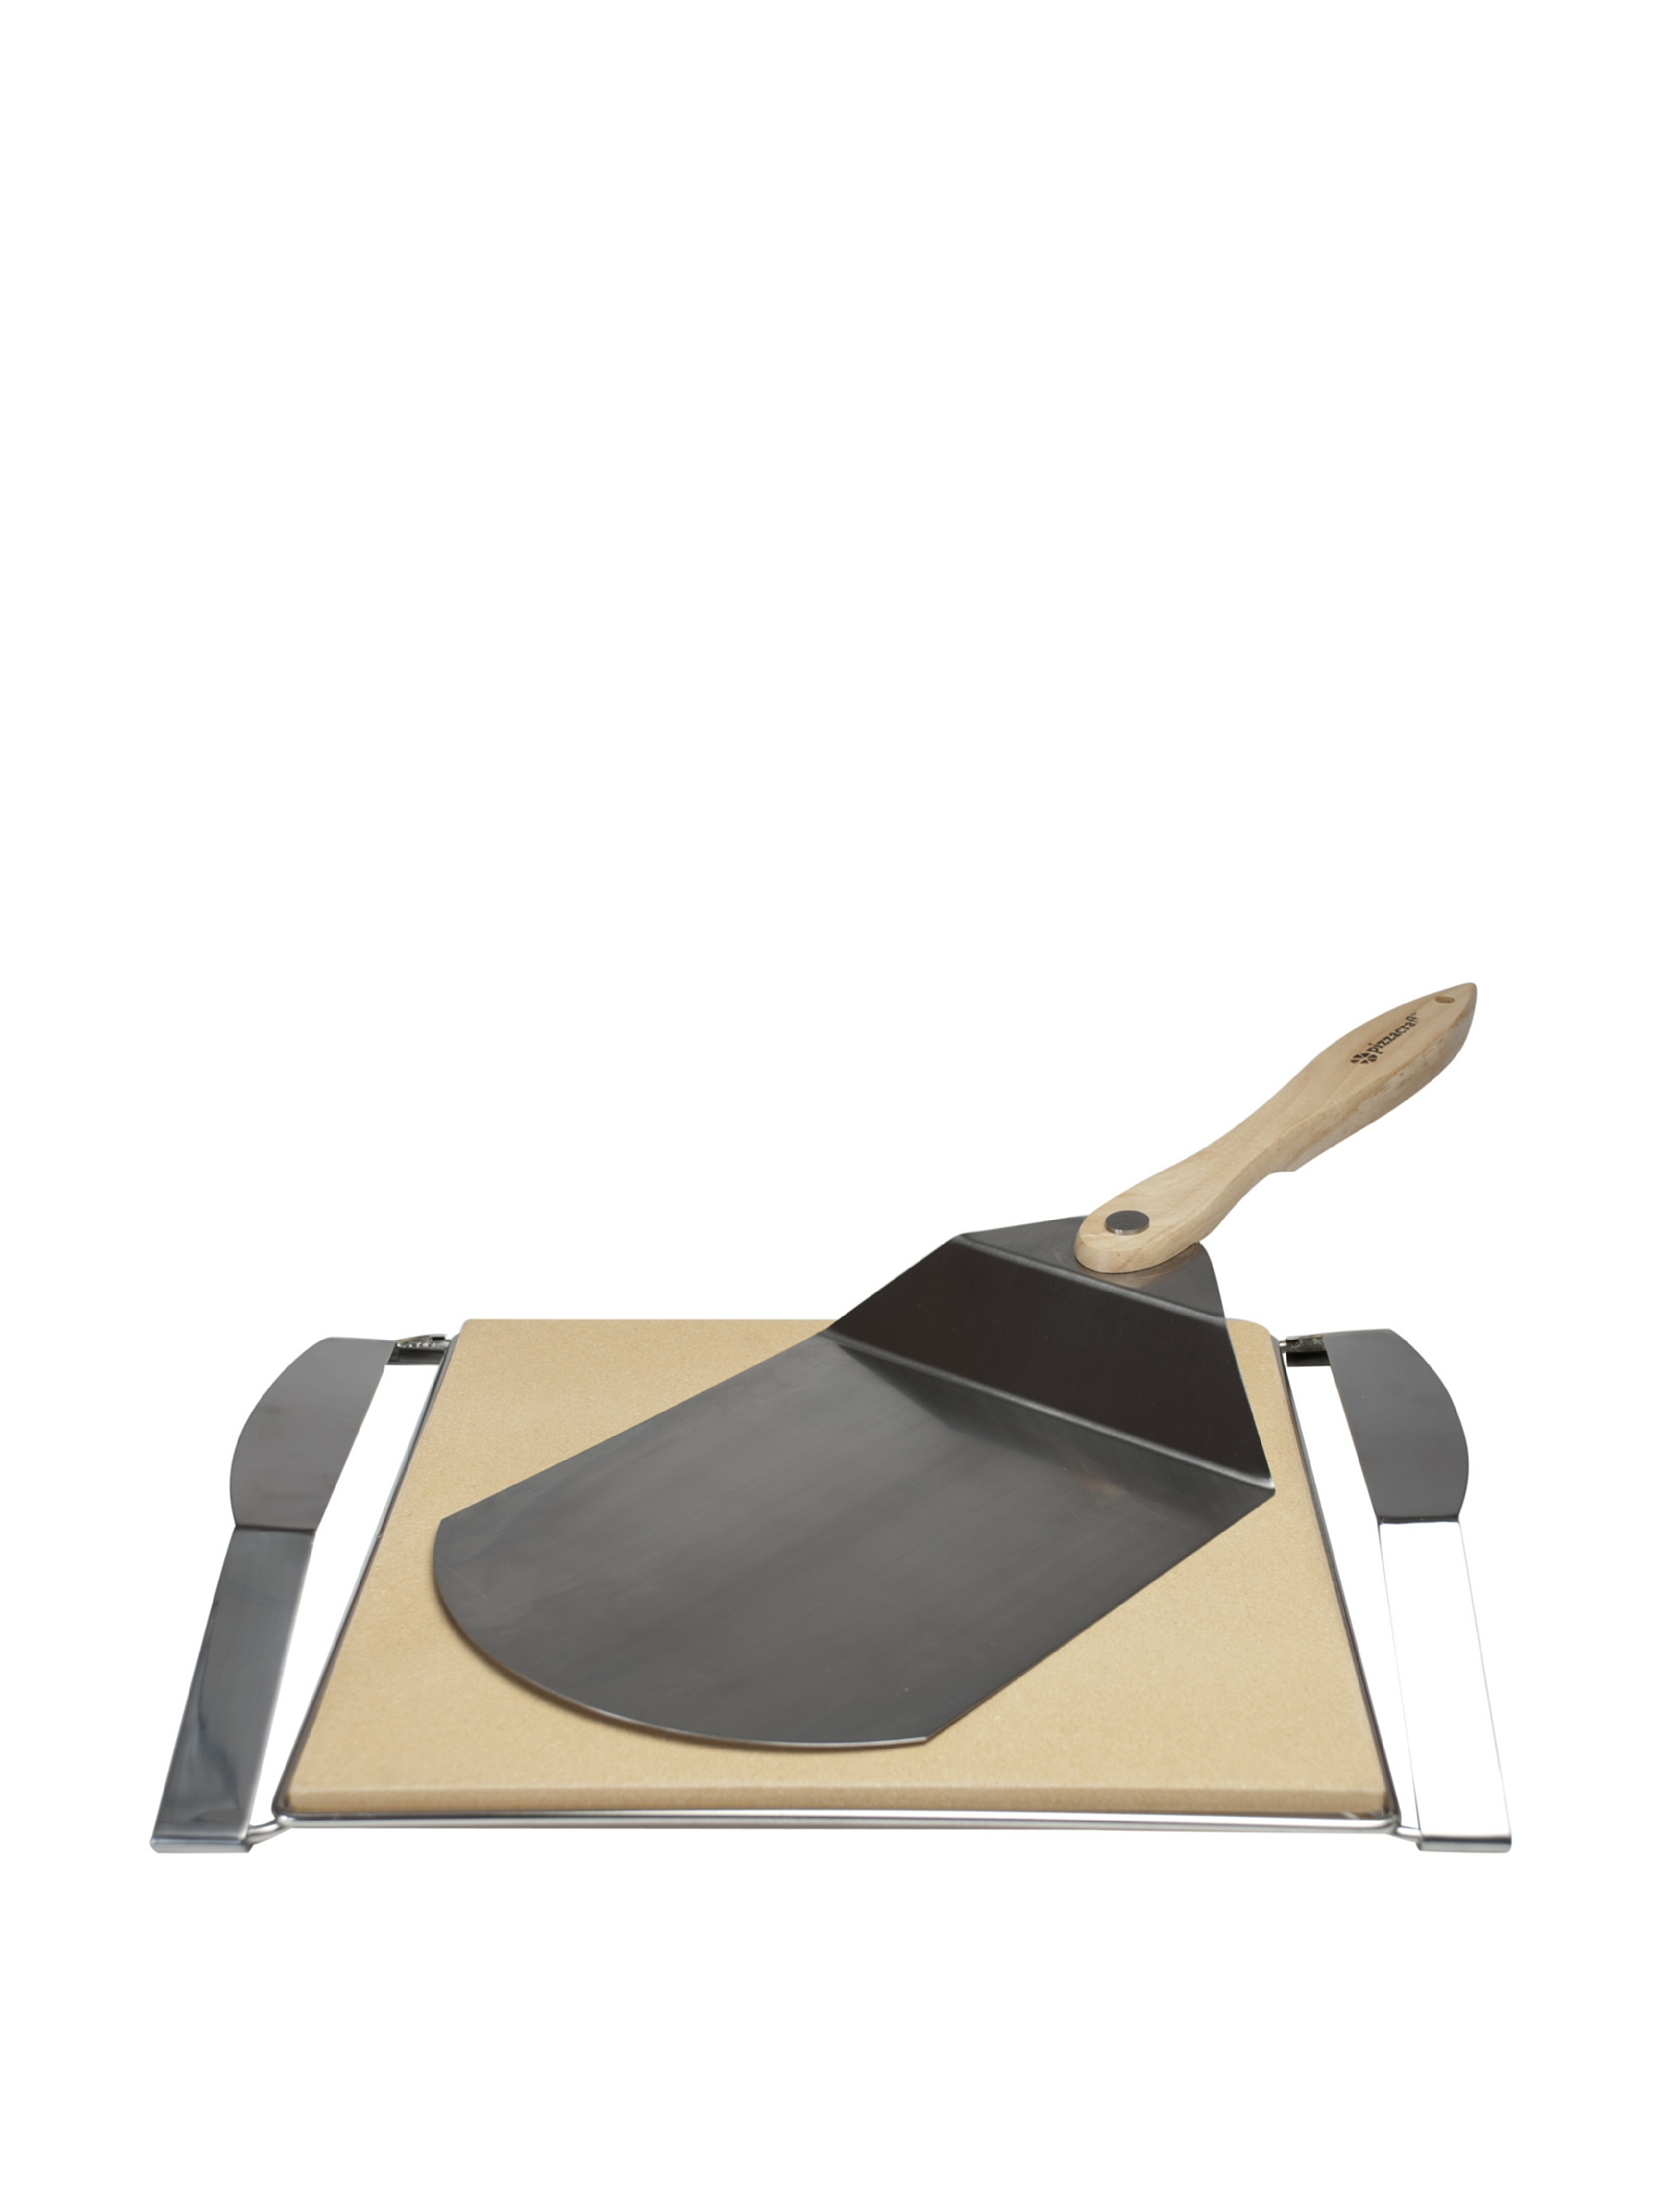 Pizzacraft Pizza On The Grill: Deluxe Grill-To-Table Set (Stone)